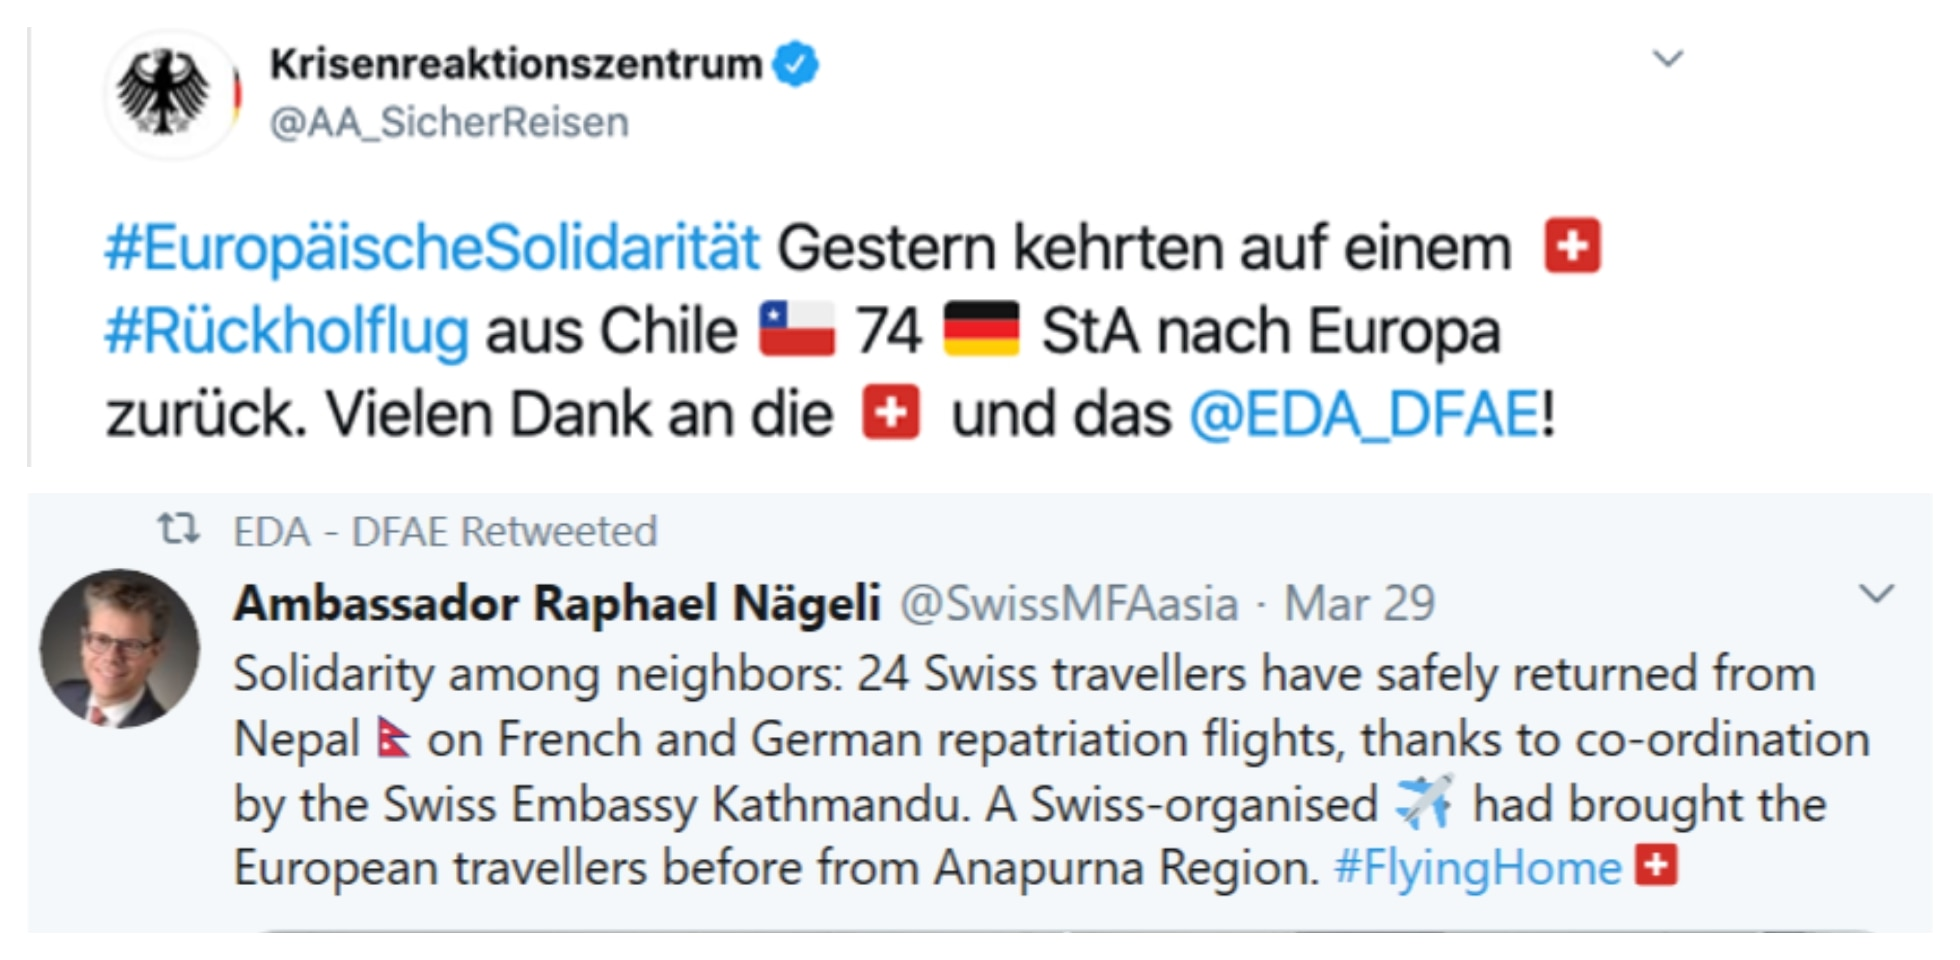 Screenshots of two tweets in which Germany thanks Switzerland and Switzerland thanks Germany for return flights.